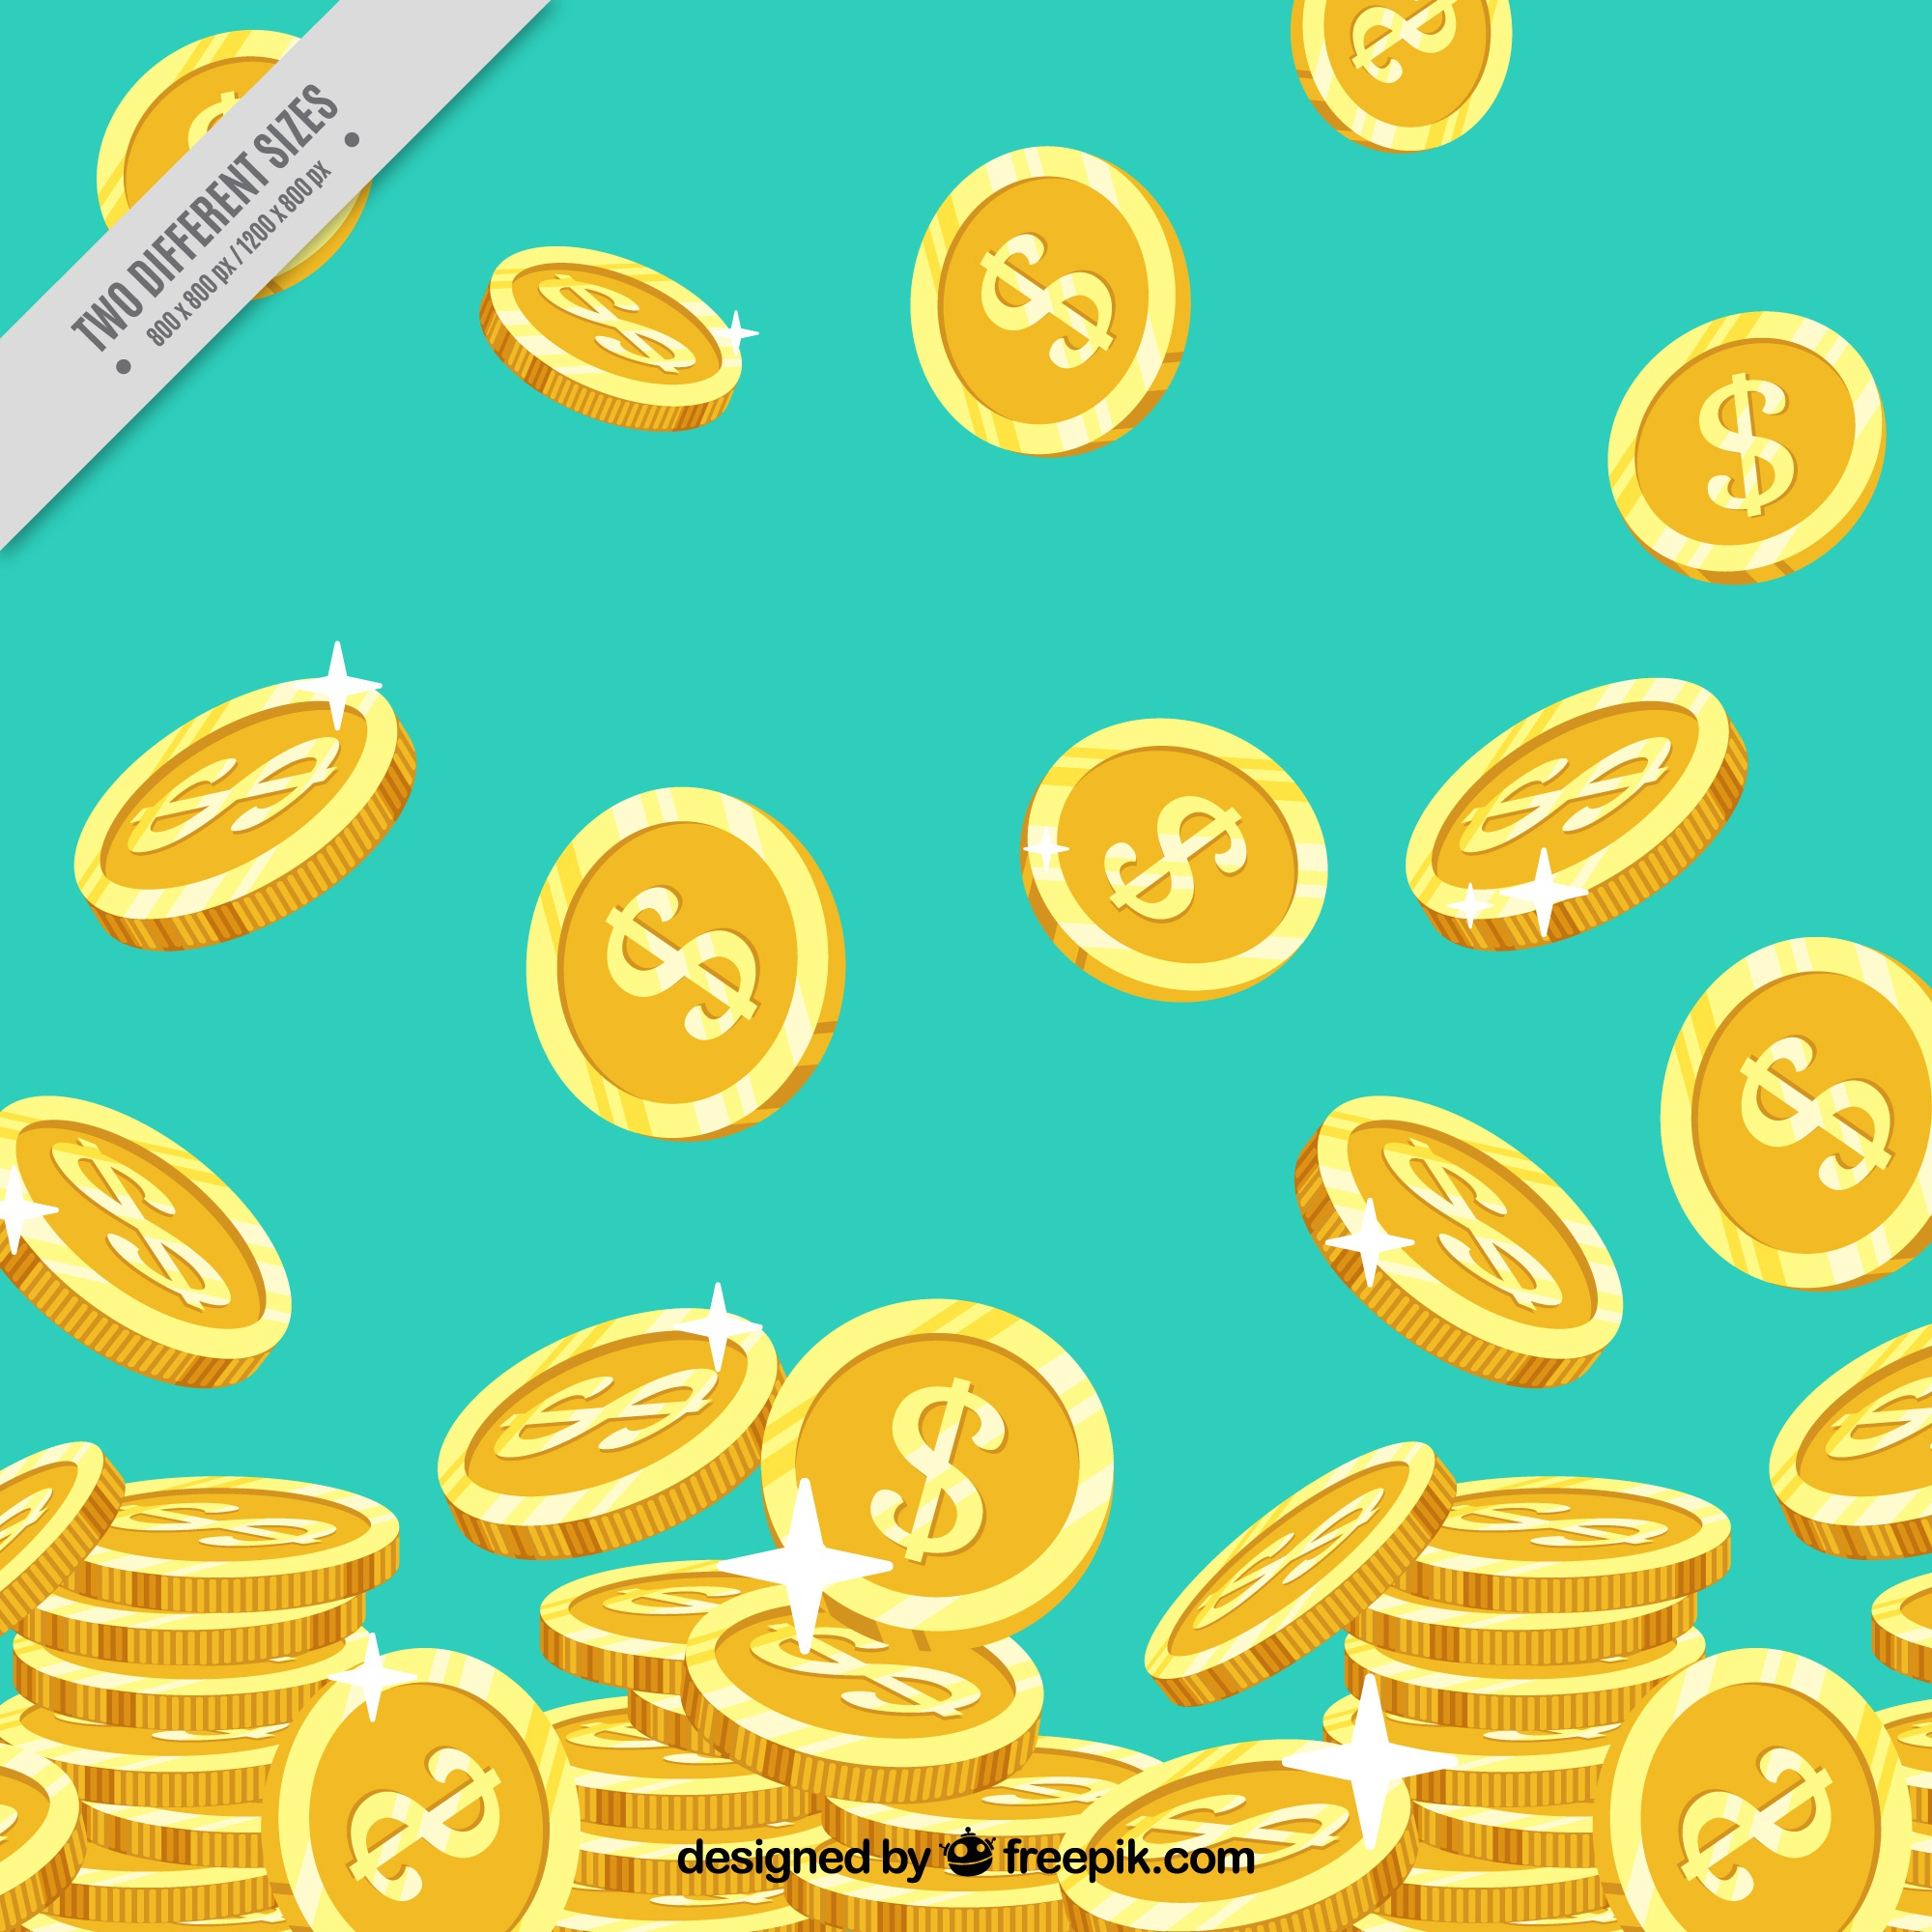 Blue background with shiny golden coins